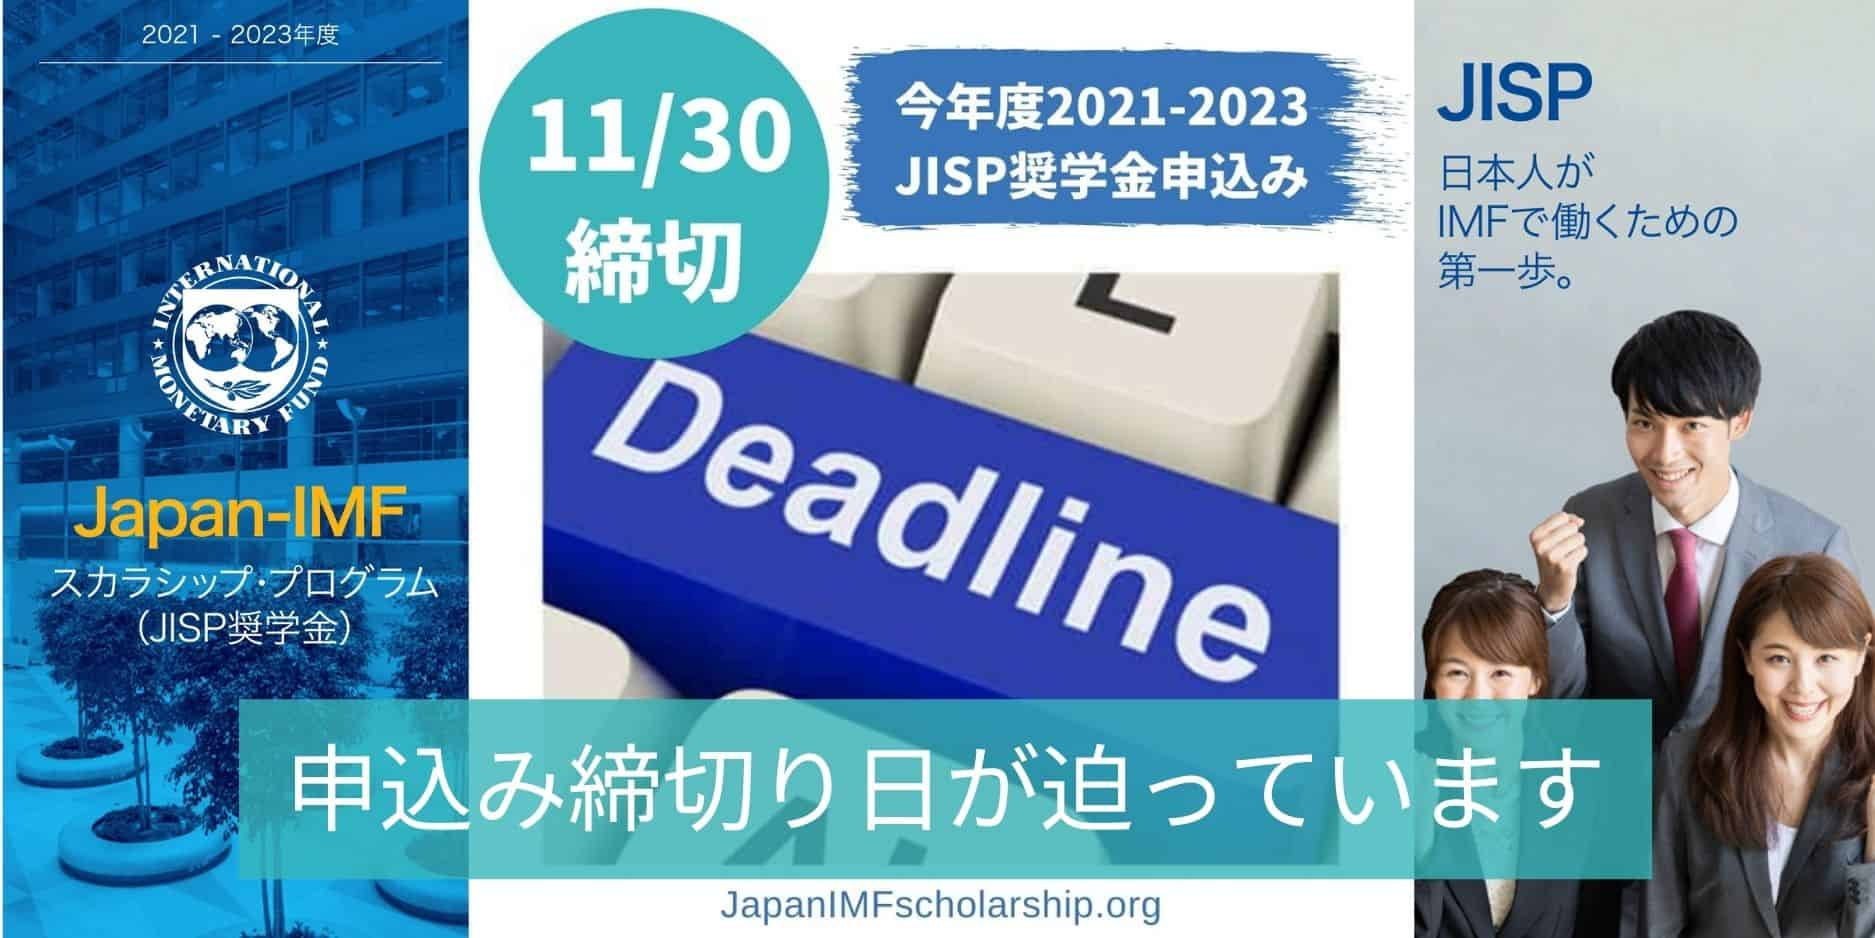 jisp web-fb jisp 2021-2023 deadline announcement